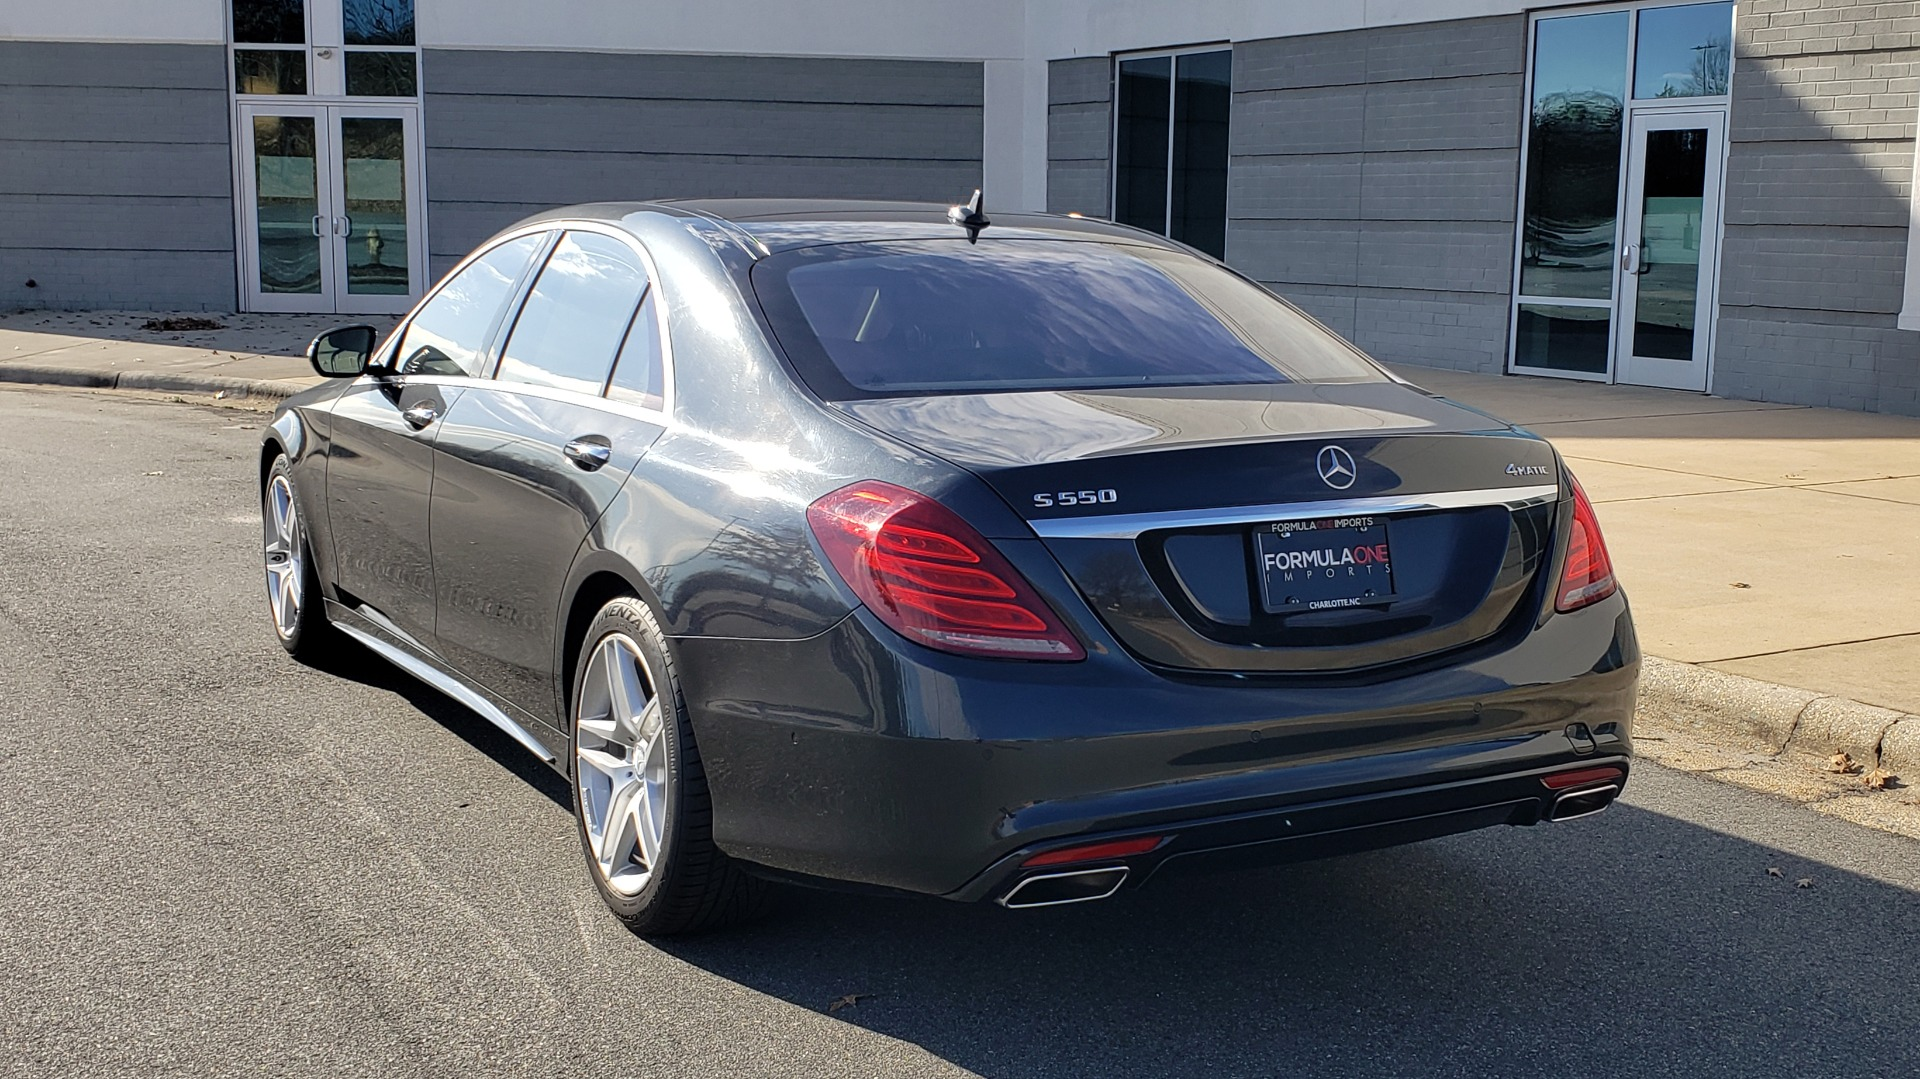 Used 2015 Mercedes-Benz S-CLASS S 550 PREMIUM / SPORT / WARMTH&COMFORT / DRVR ASST / SRND VIEW for sale Sold at Formula Imports in Charlotte NC 28227 4